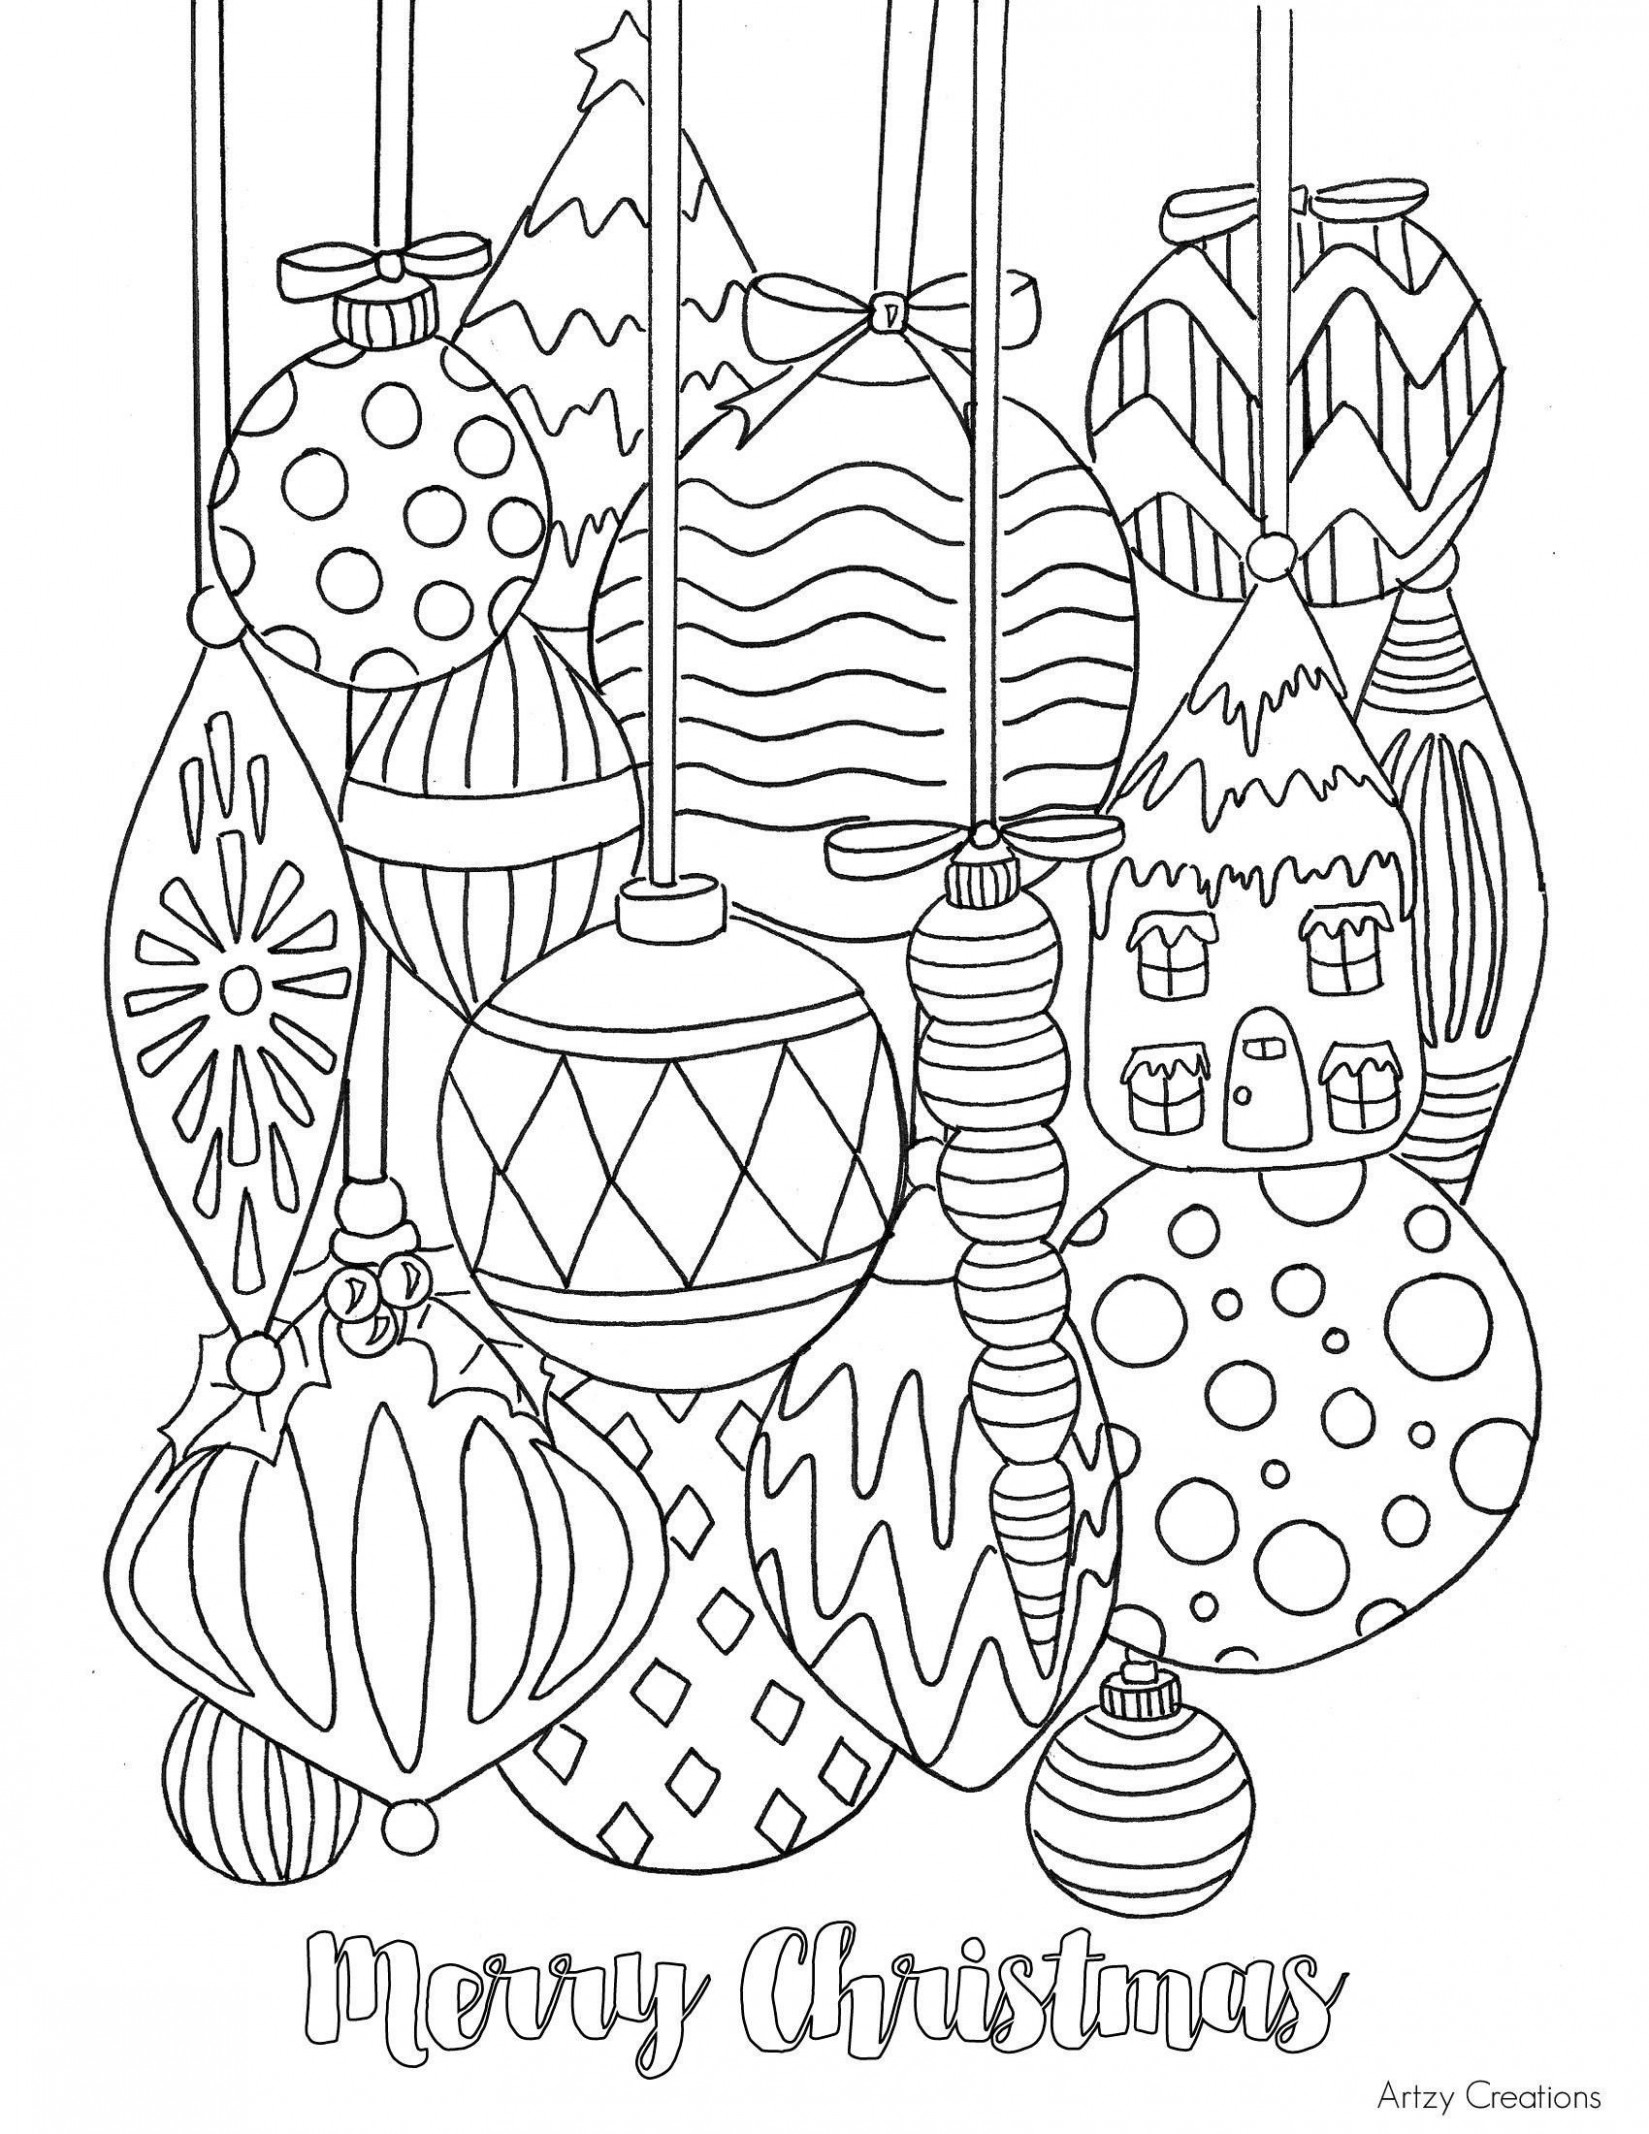 Inspirational Free Coloring Pages Transformers | JVZOOREVIEW – Christmas Coloring Pages For Adults Free Printable